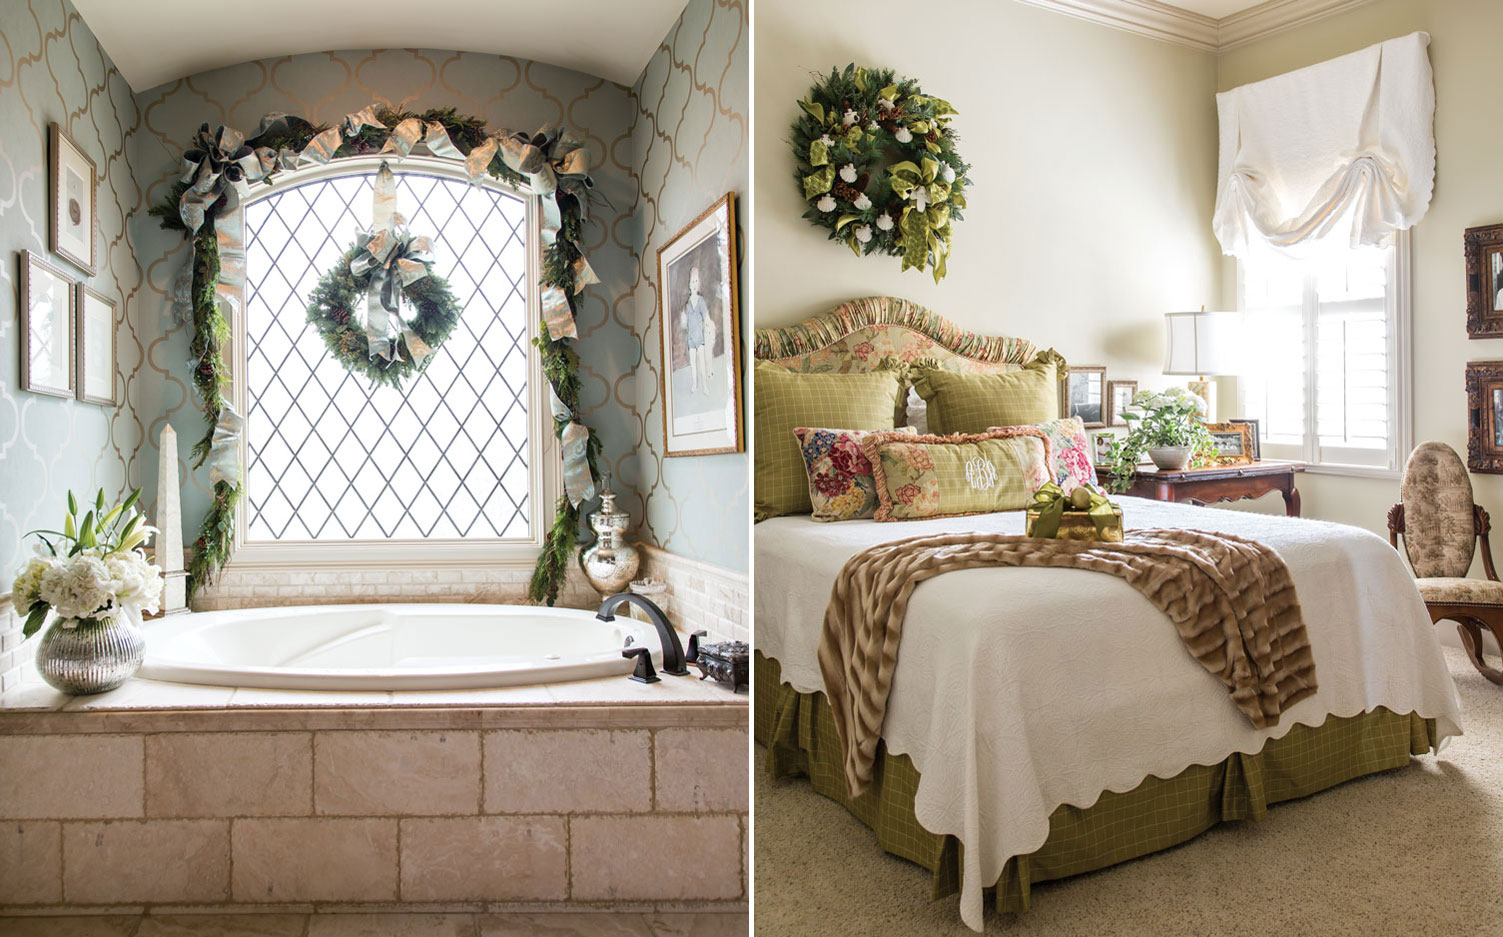 A picture of a bedroom and bathroom decorated for Christmas